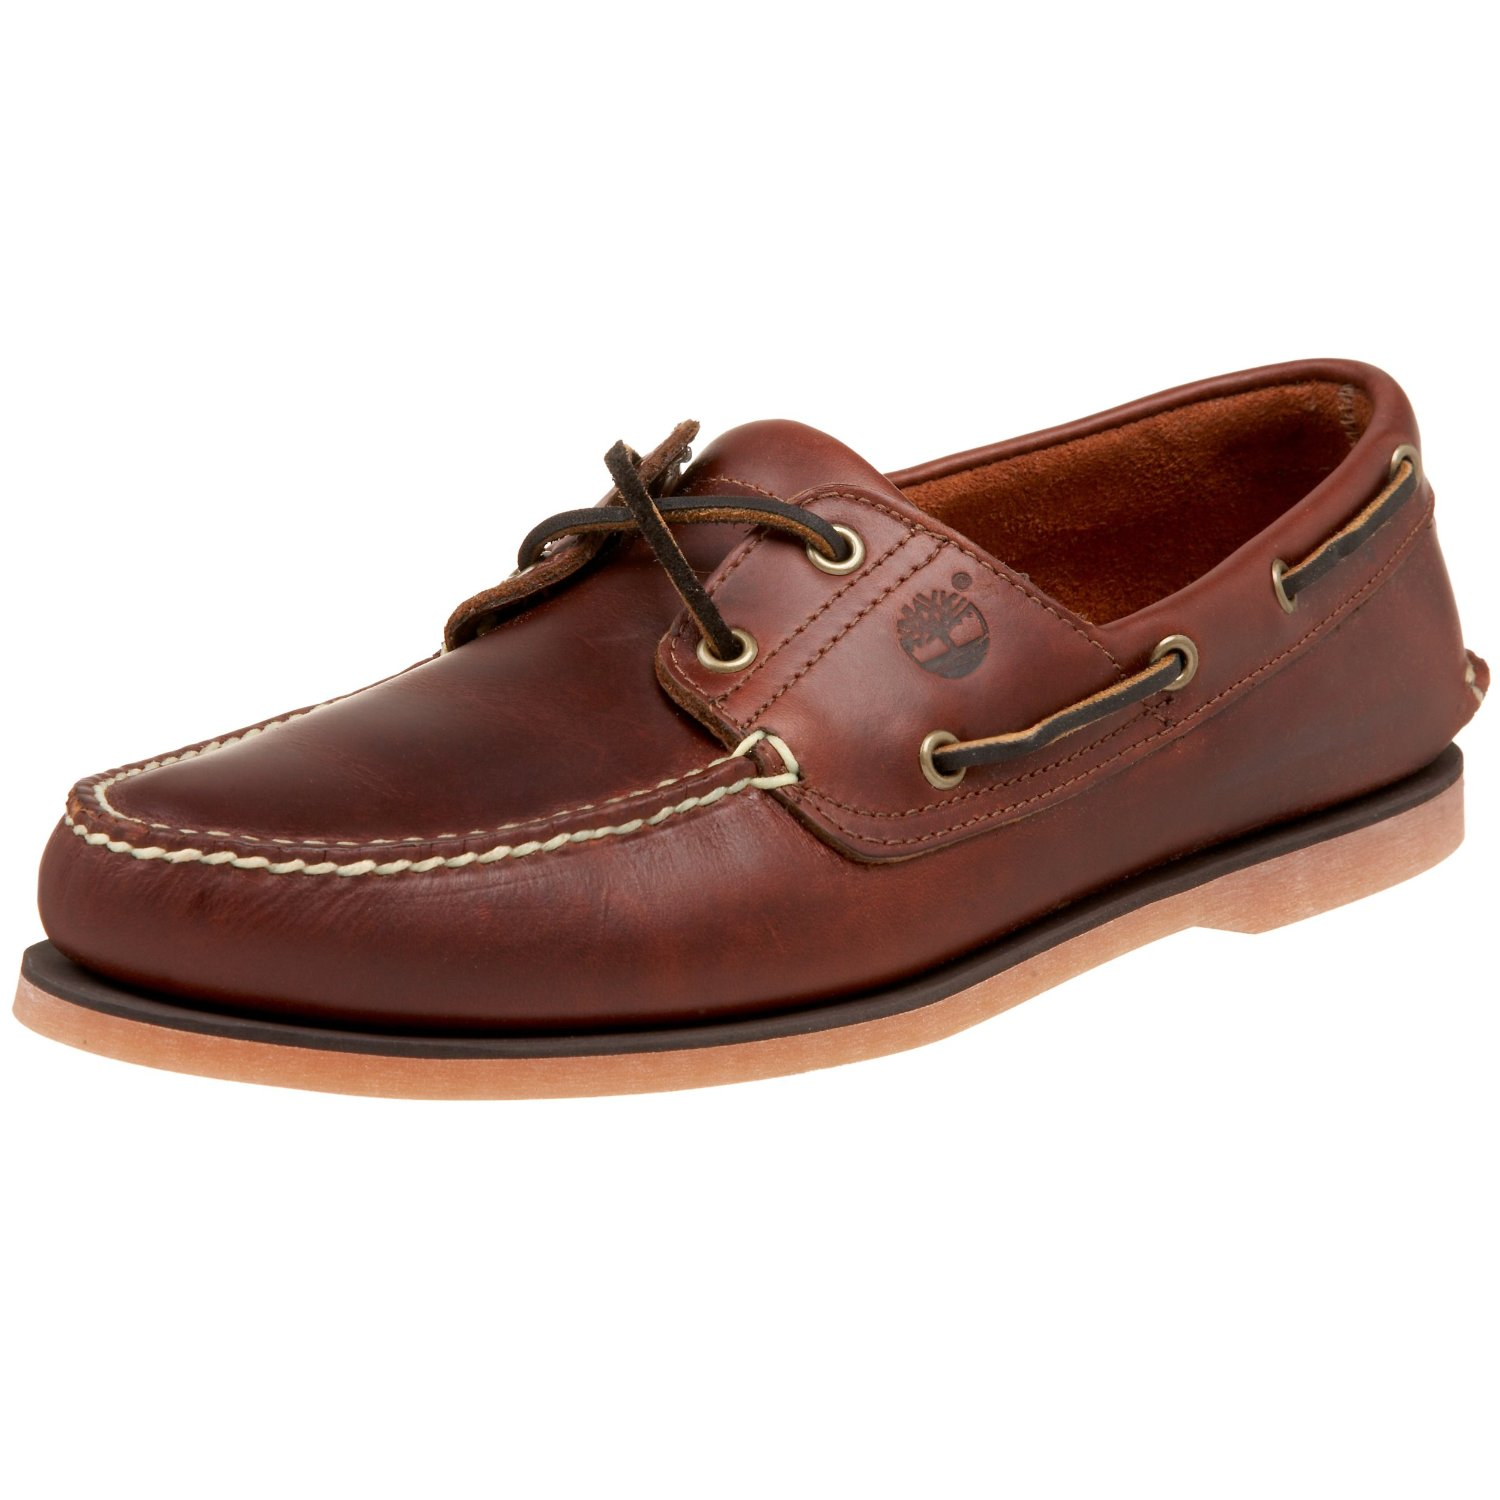 Pro Collection: Timberland Men's Classic Boat Shoe